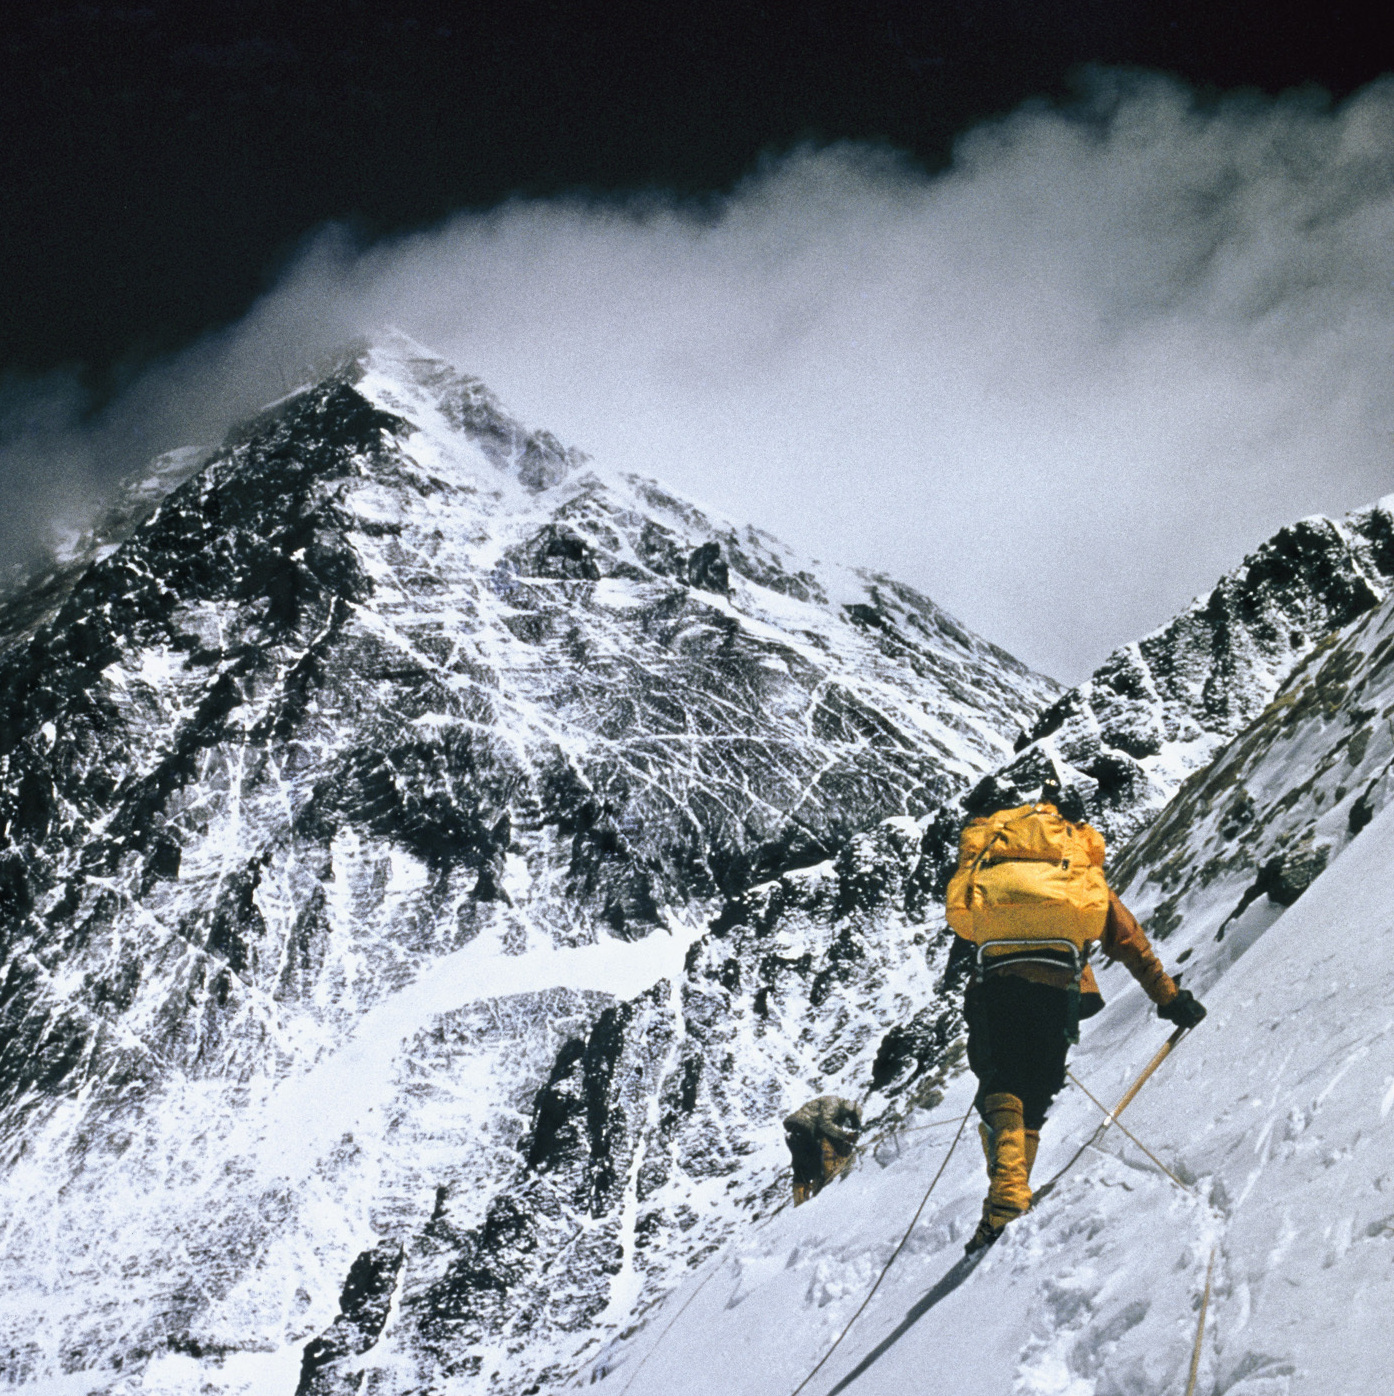 At 25,000 feet, this 1963 photo shows the push towards the summit of Everest.